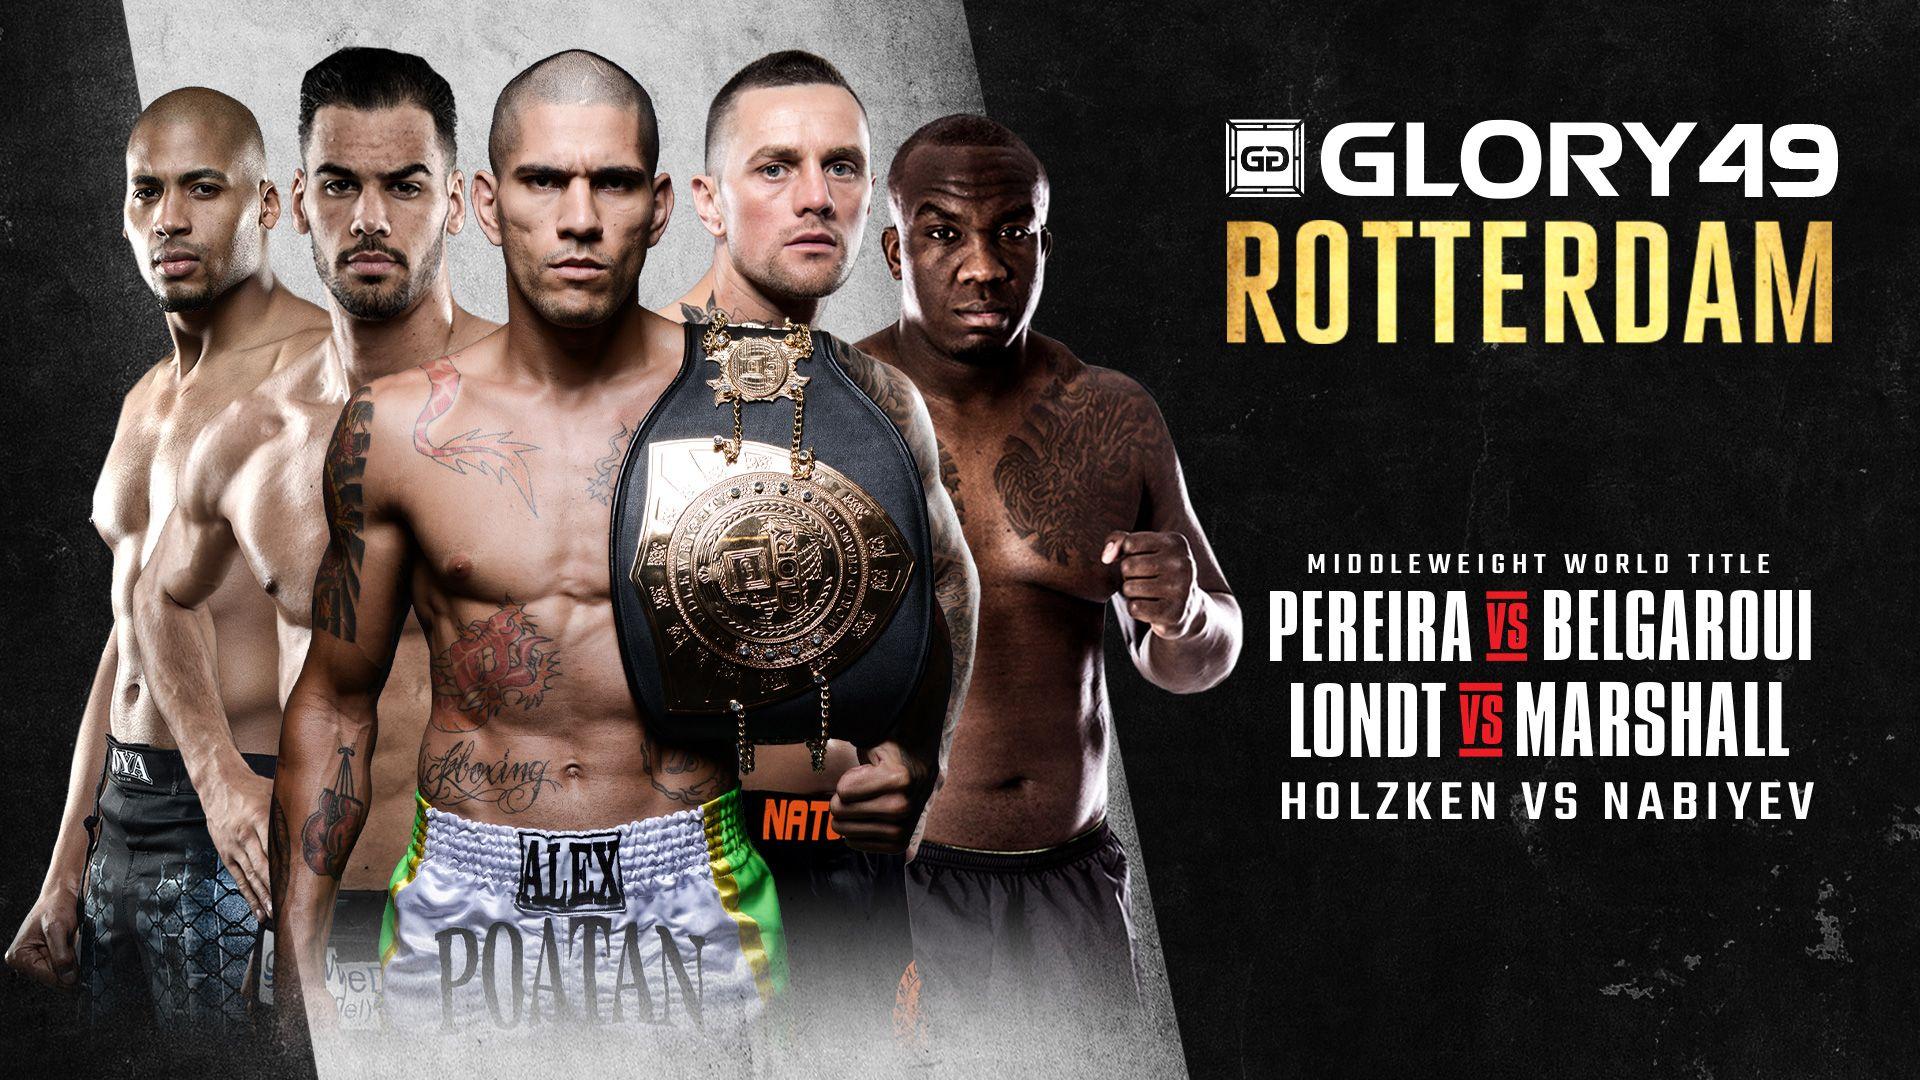 Kickboxing: GLORY 49